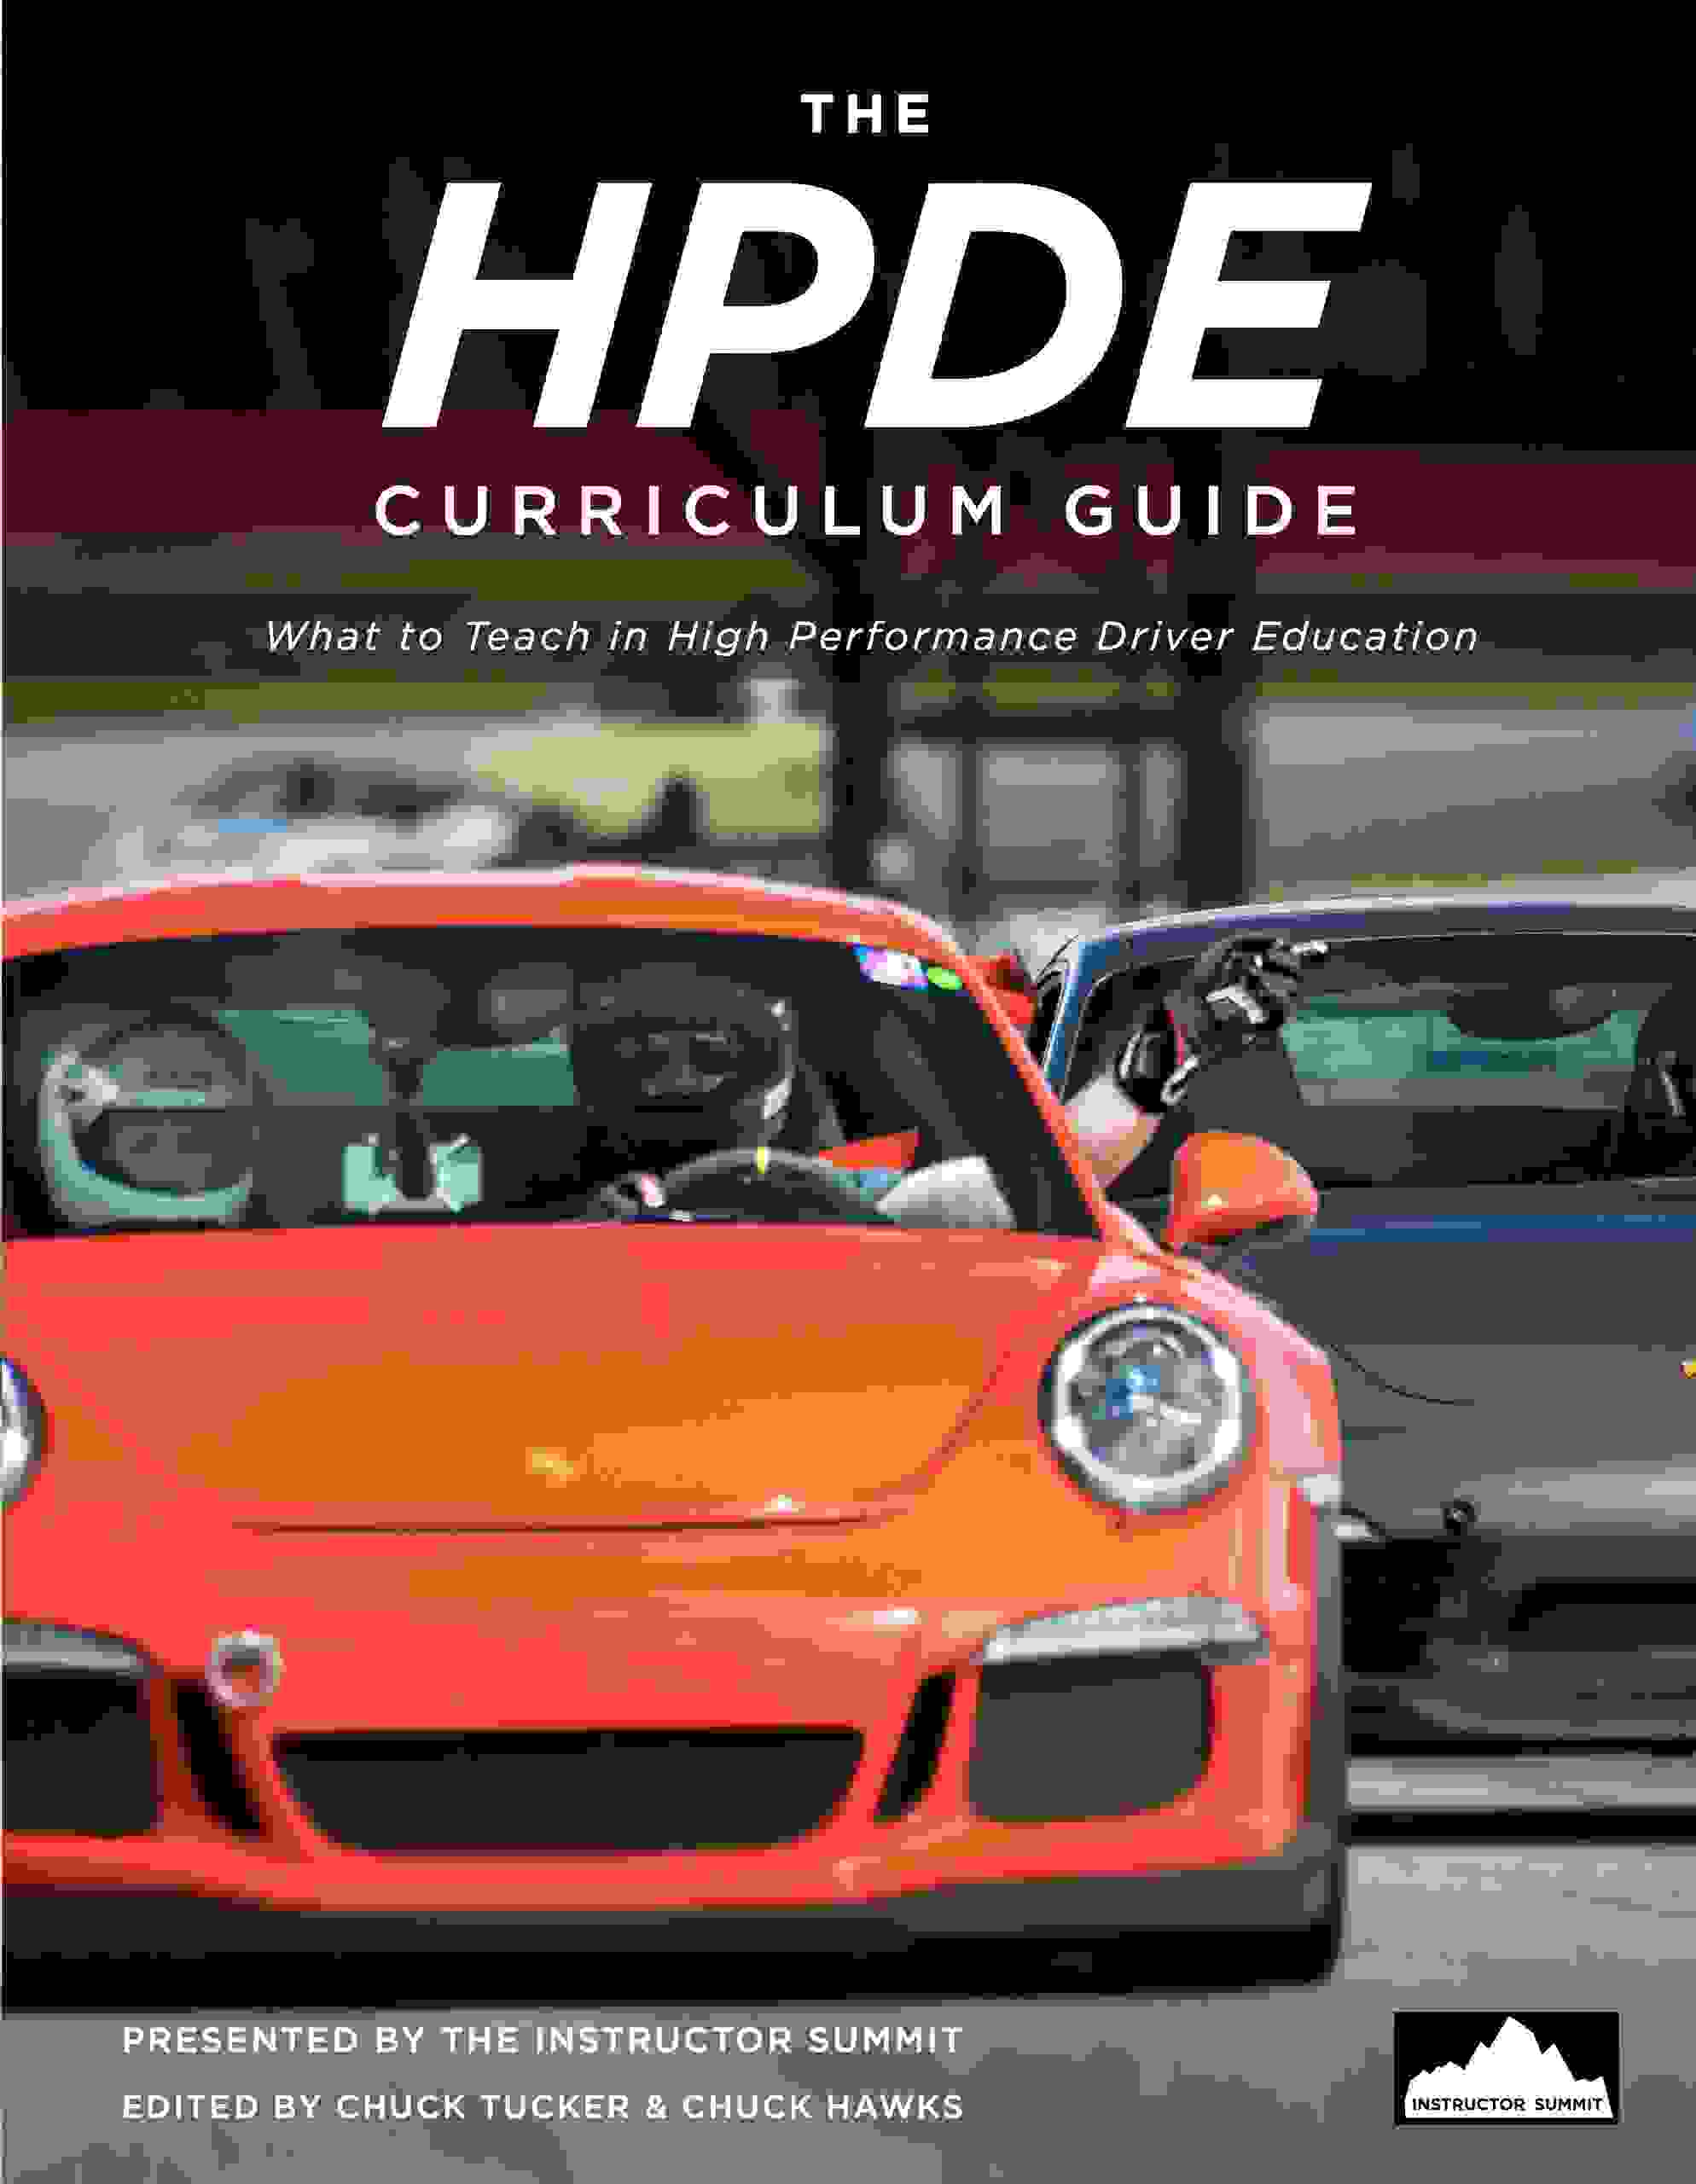 The HPDE Curriculum Guide book cover